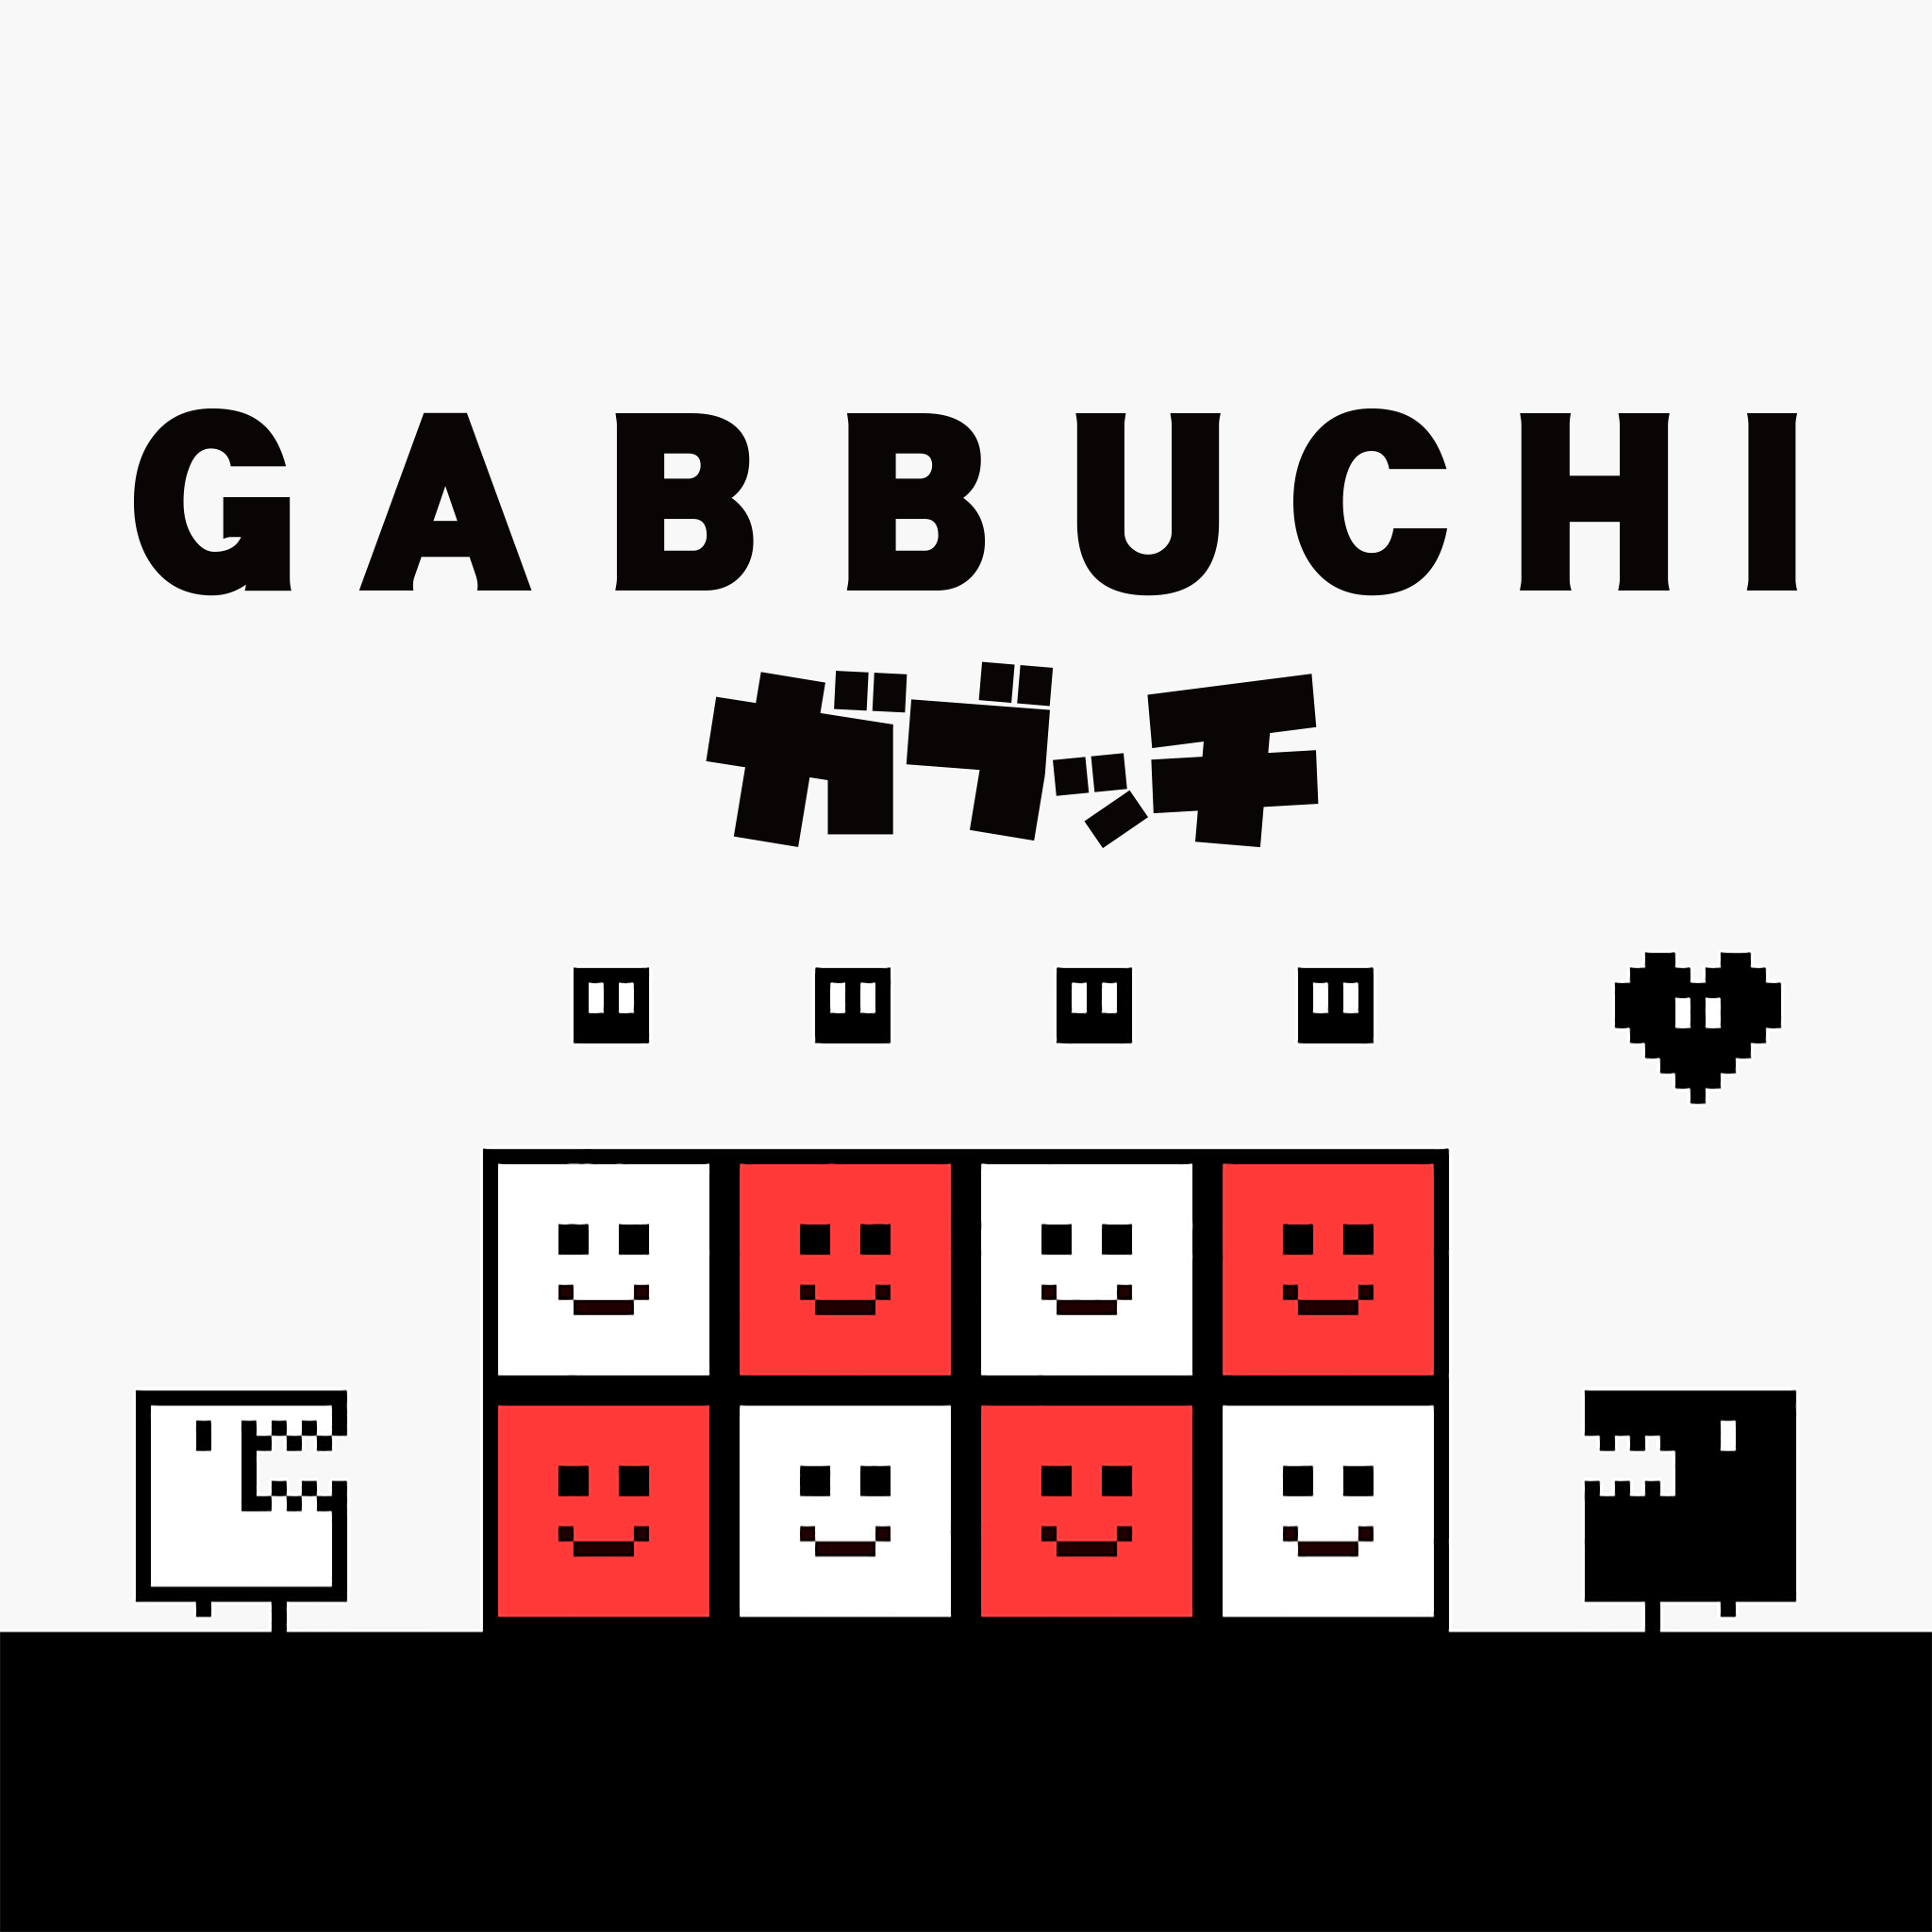 Thumbnail of Gabbuchi on PS4